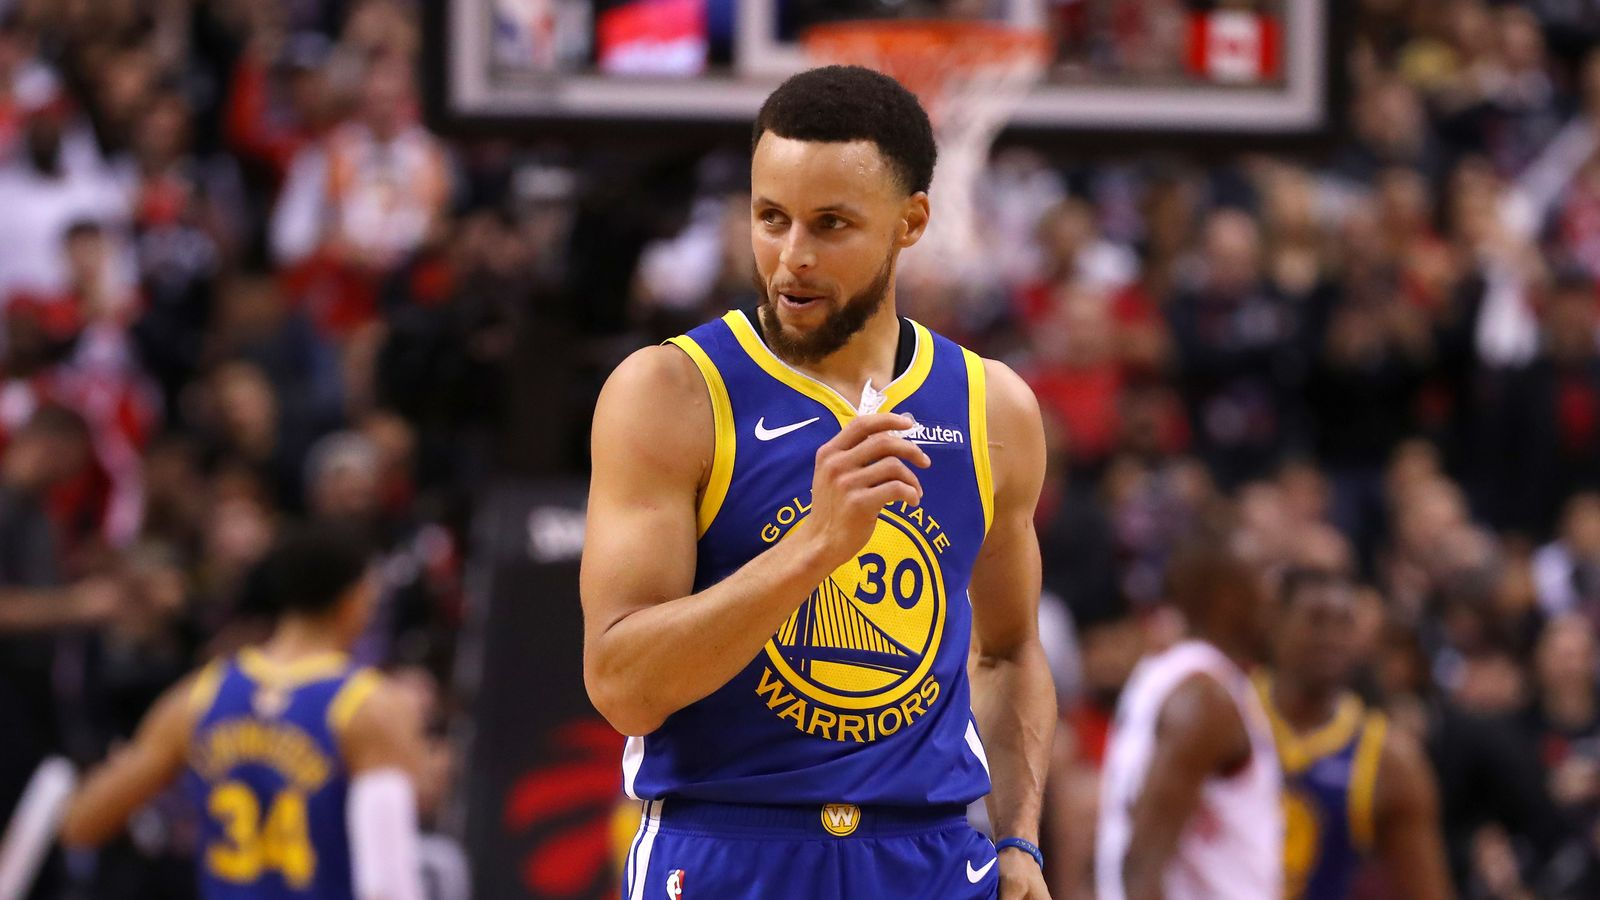 Nba Steph Curry: Warriors Turn To Stephen Curry In NBA Finals To Lead